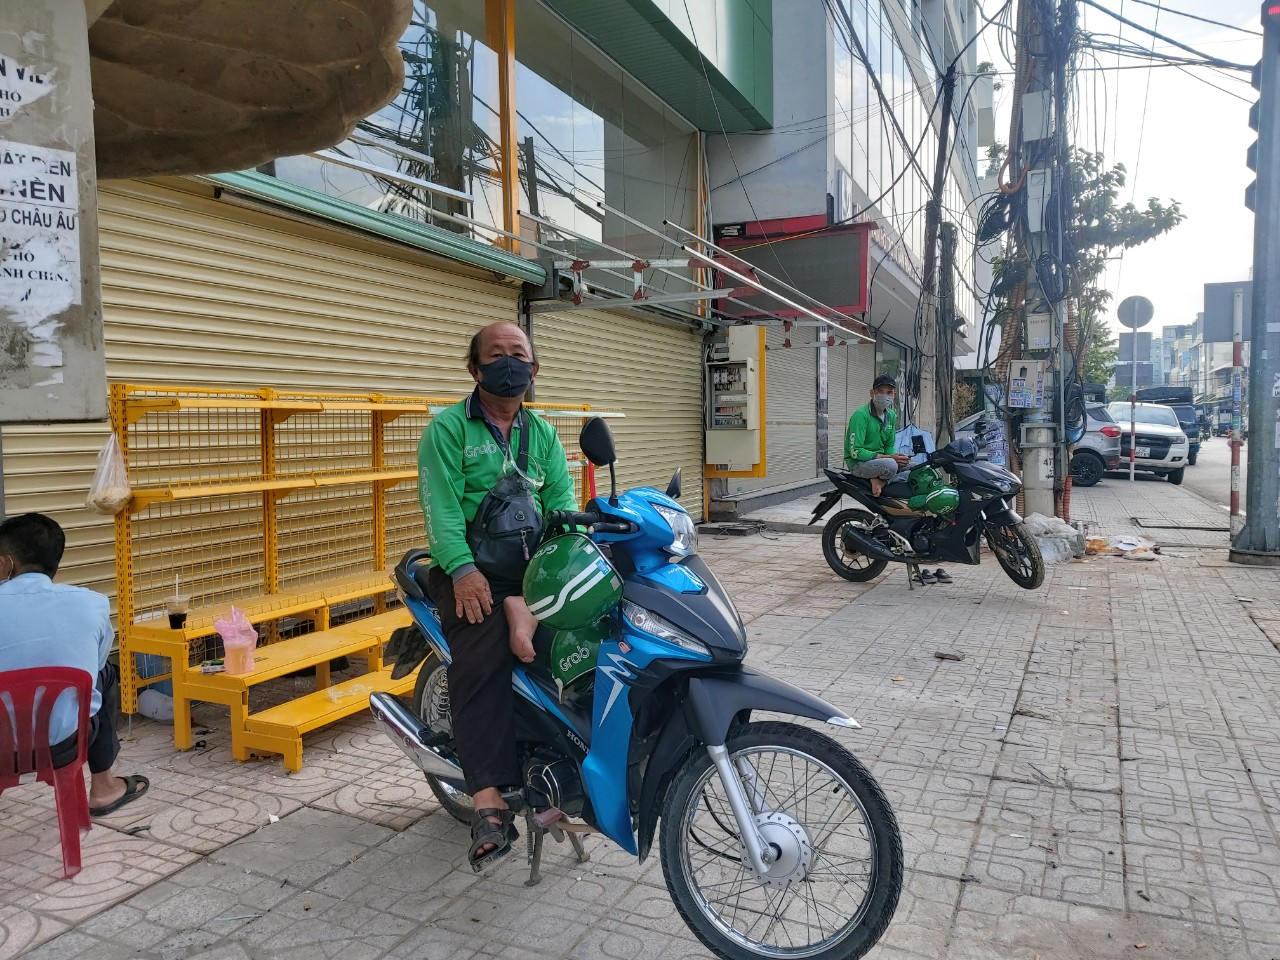 Motorbike taxi drivers keep a distance of two meters